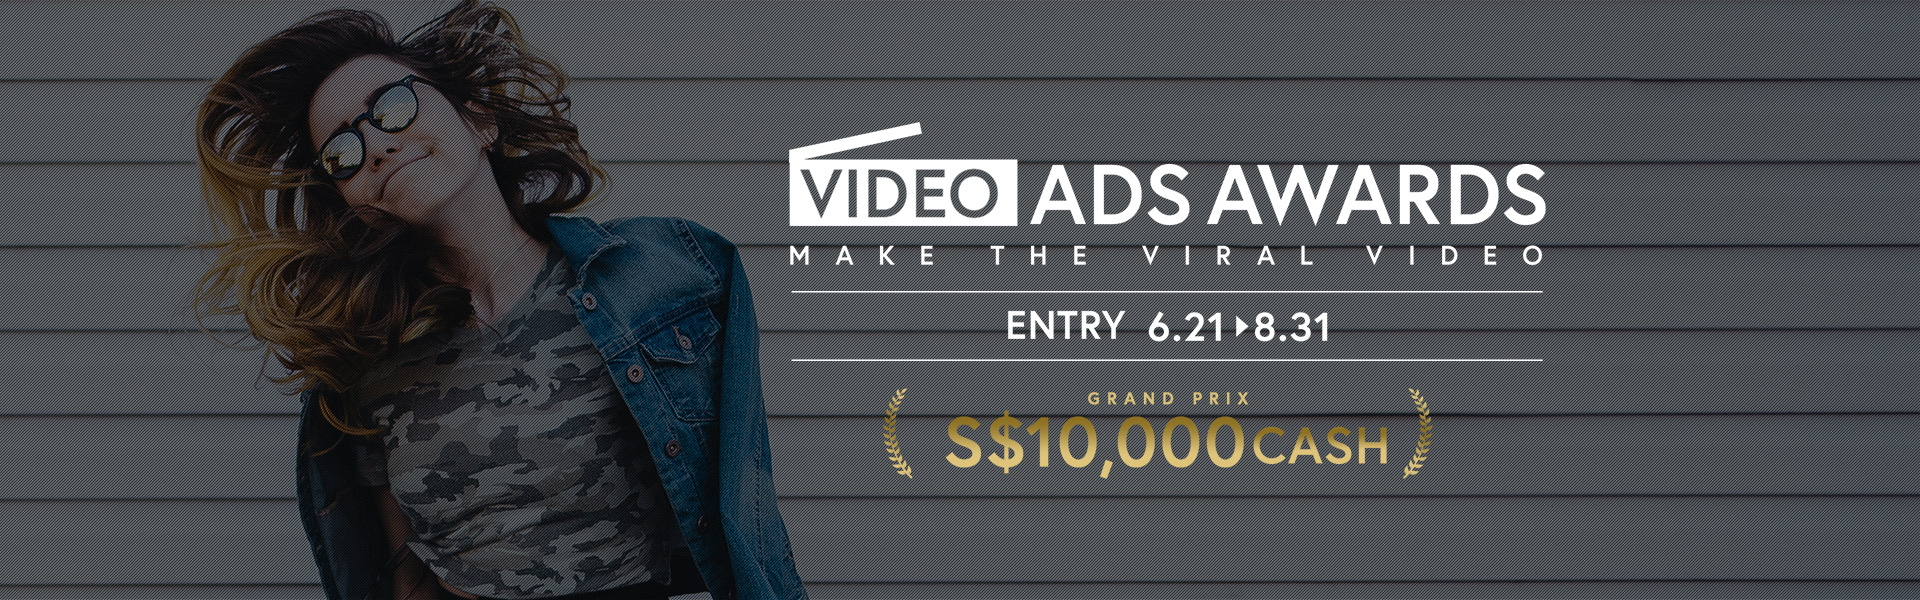 OWNDAYS VIDEO ADS AWARDS